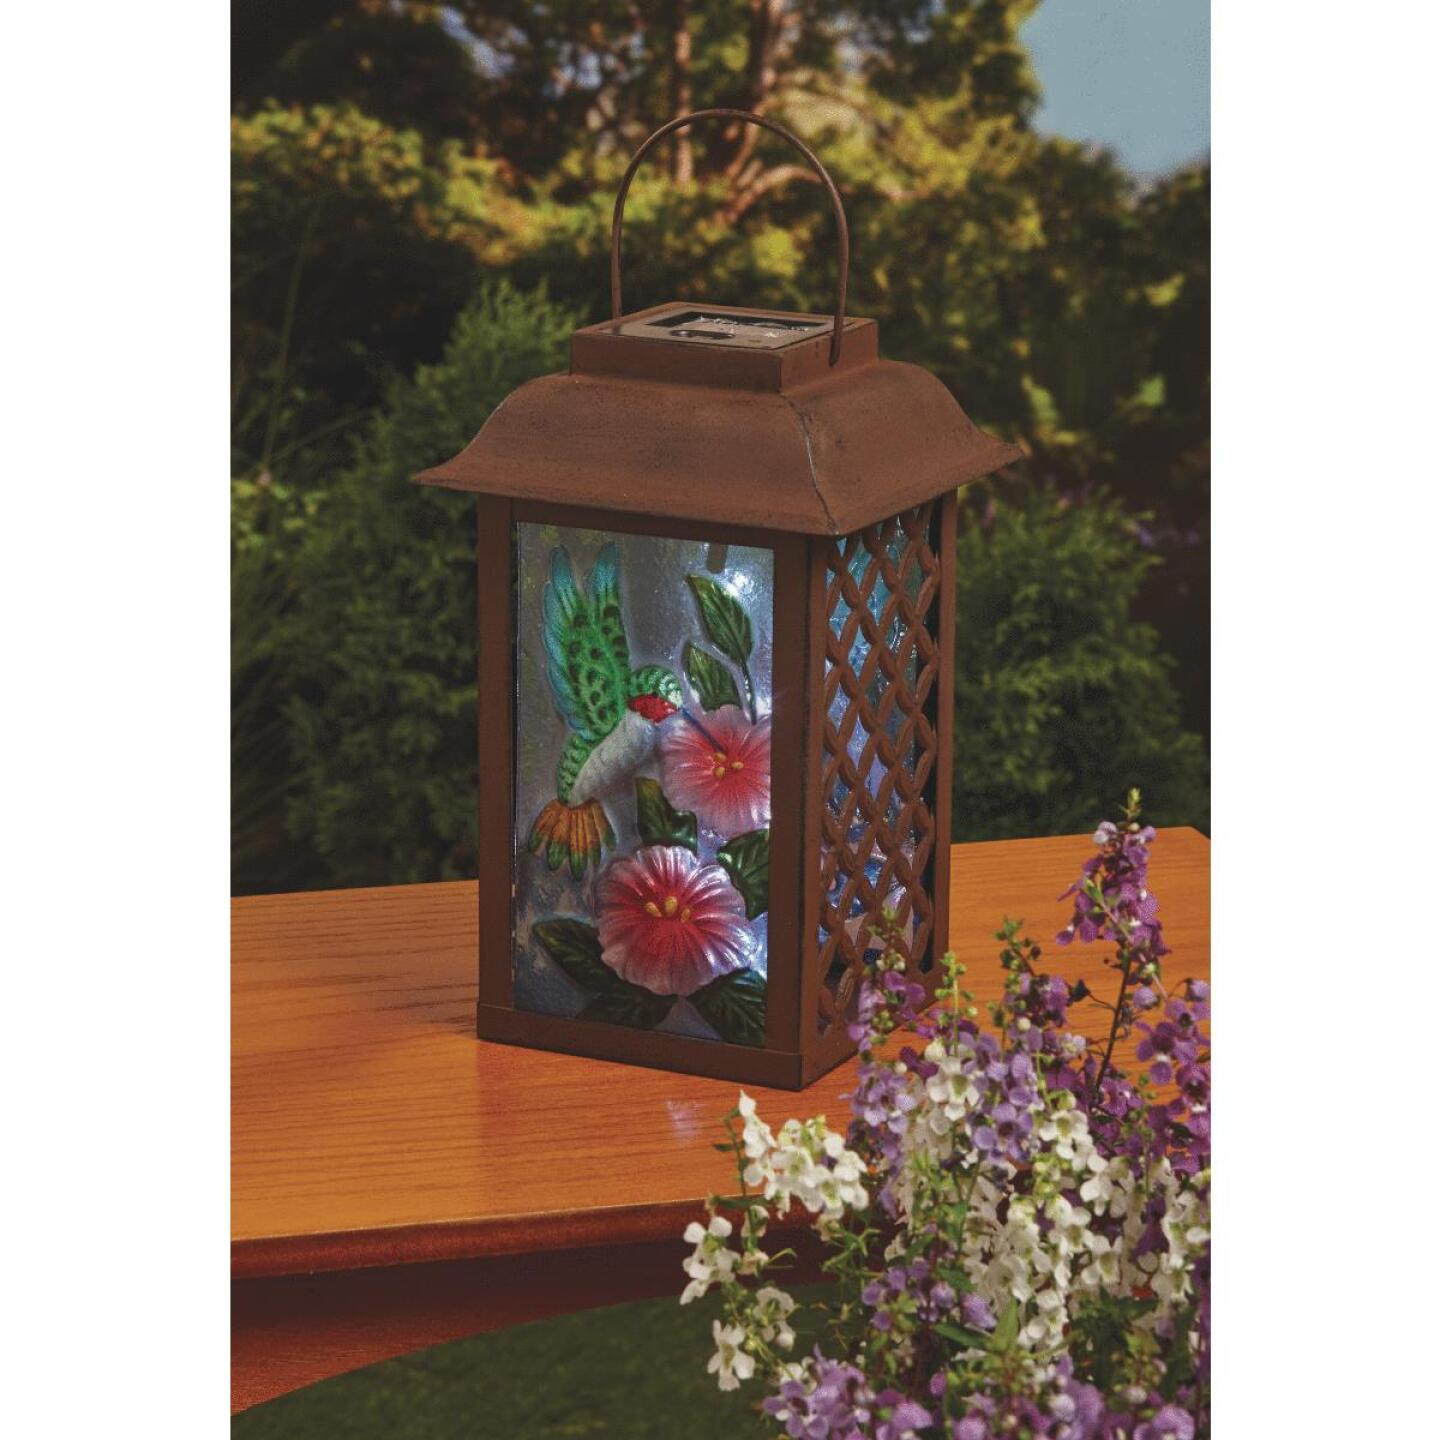 Outdoor Expressions 6 In. W. x 9.5 In. H. x 6 In. D. Solar Patio Latern Image 4